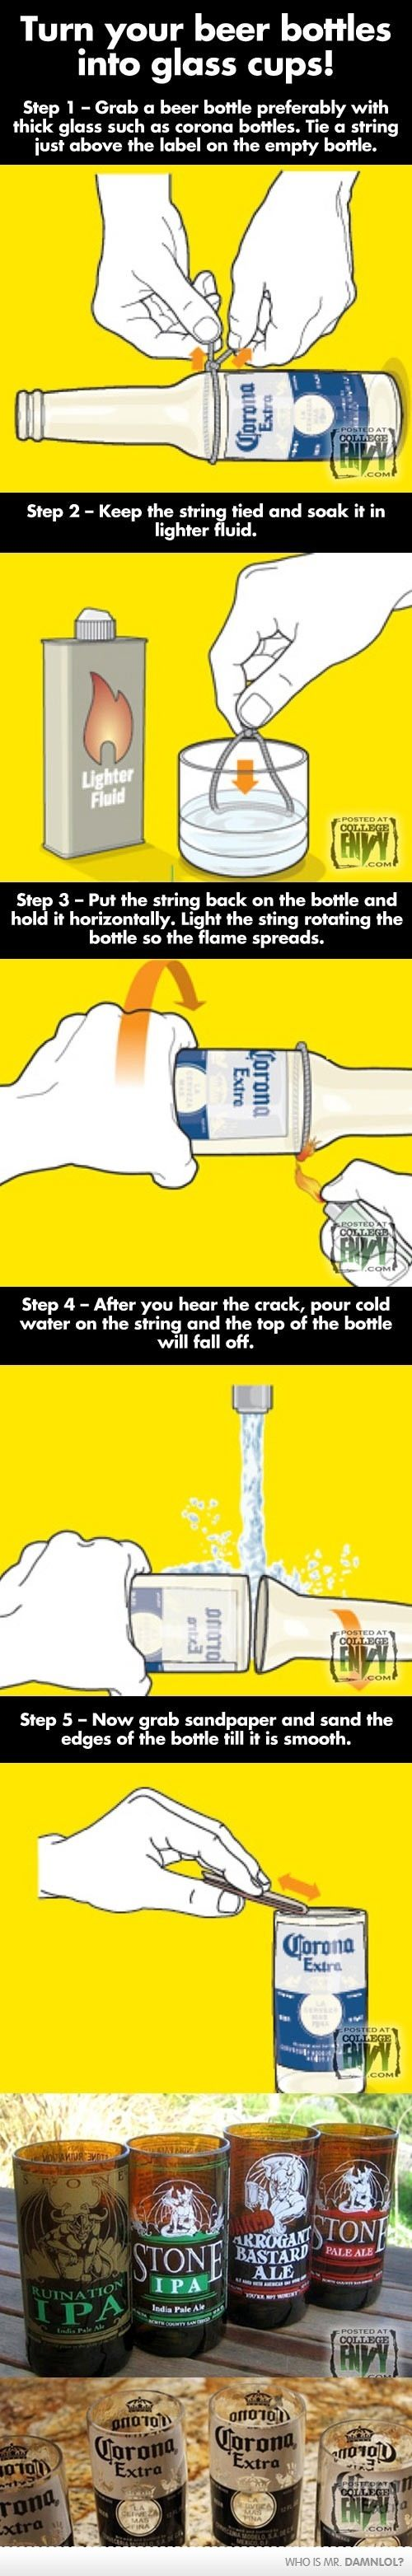 Always wondered how to do this!